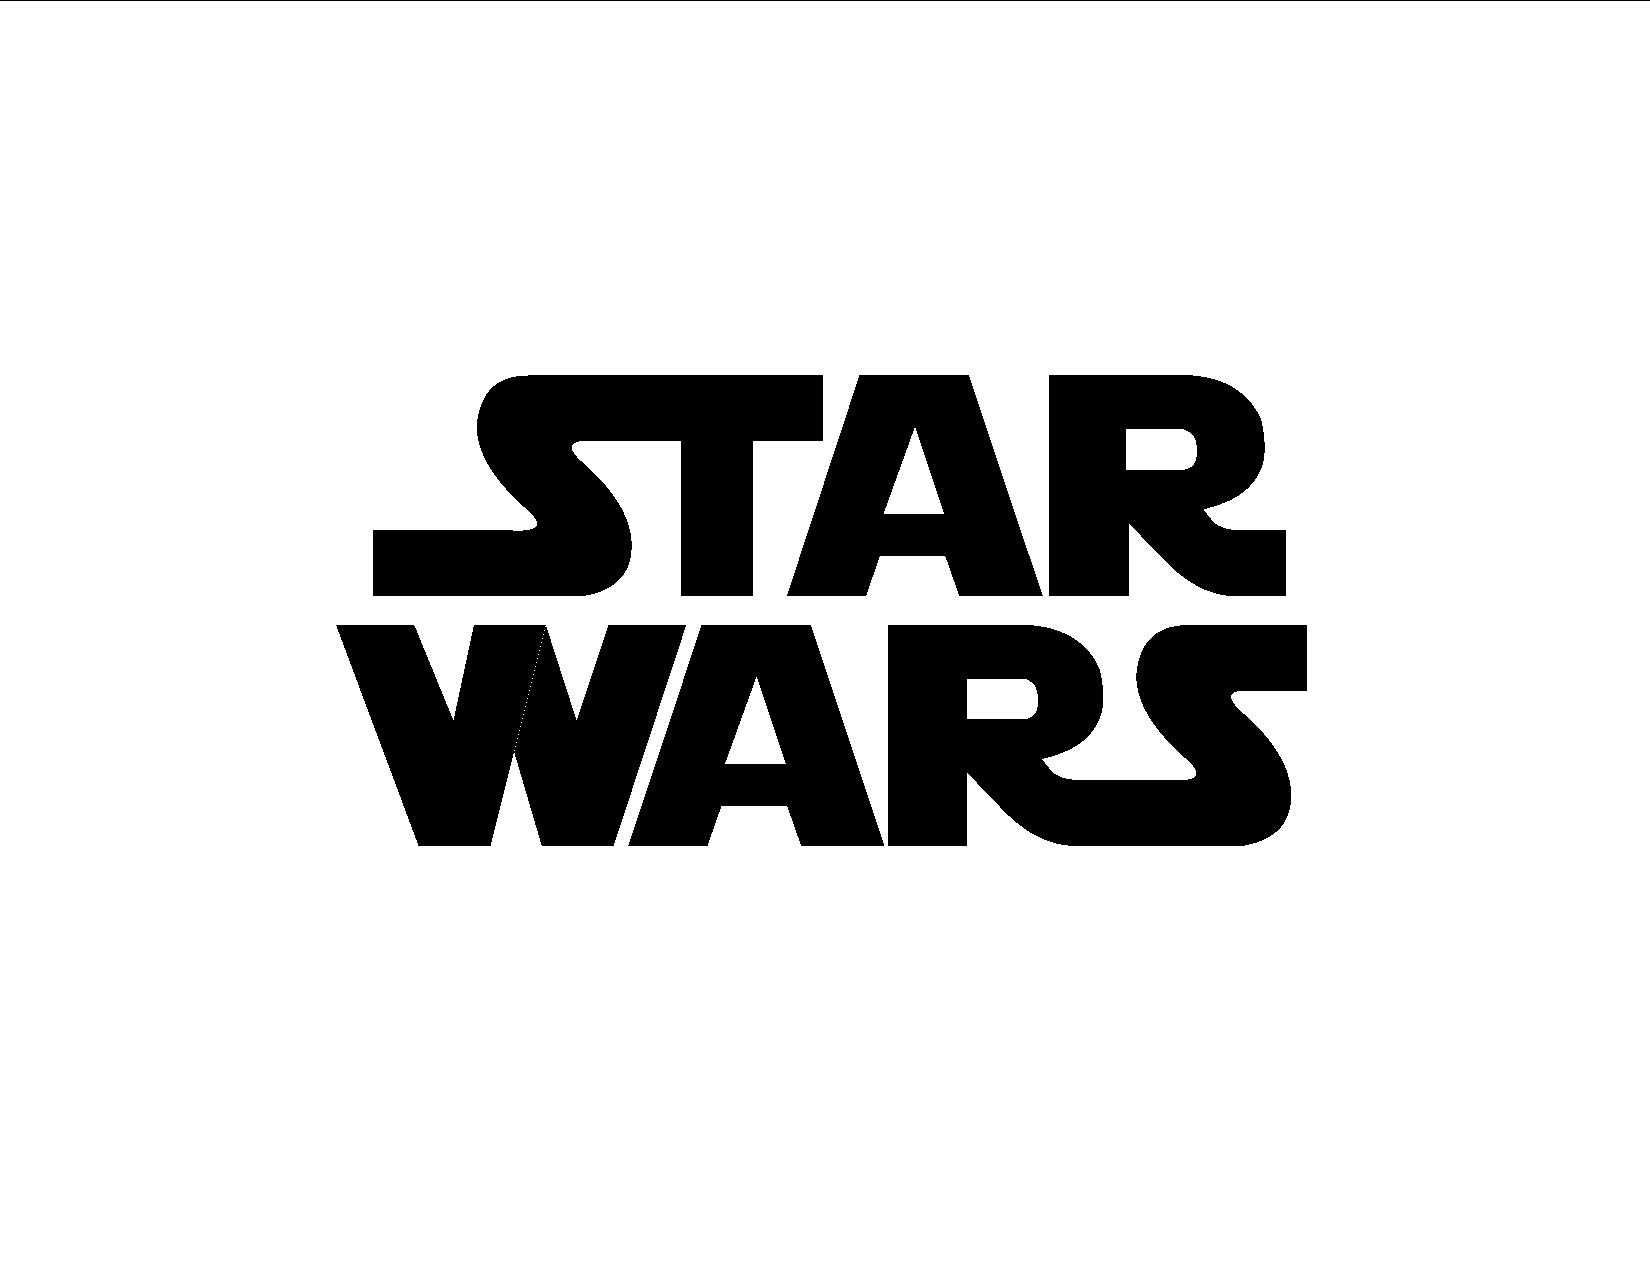 Star Wars Logo Wallpapers Top Free Star Wars Logo Backgrounds Wallpaperaccess